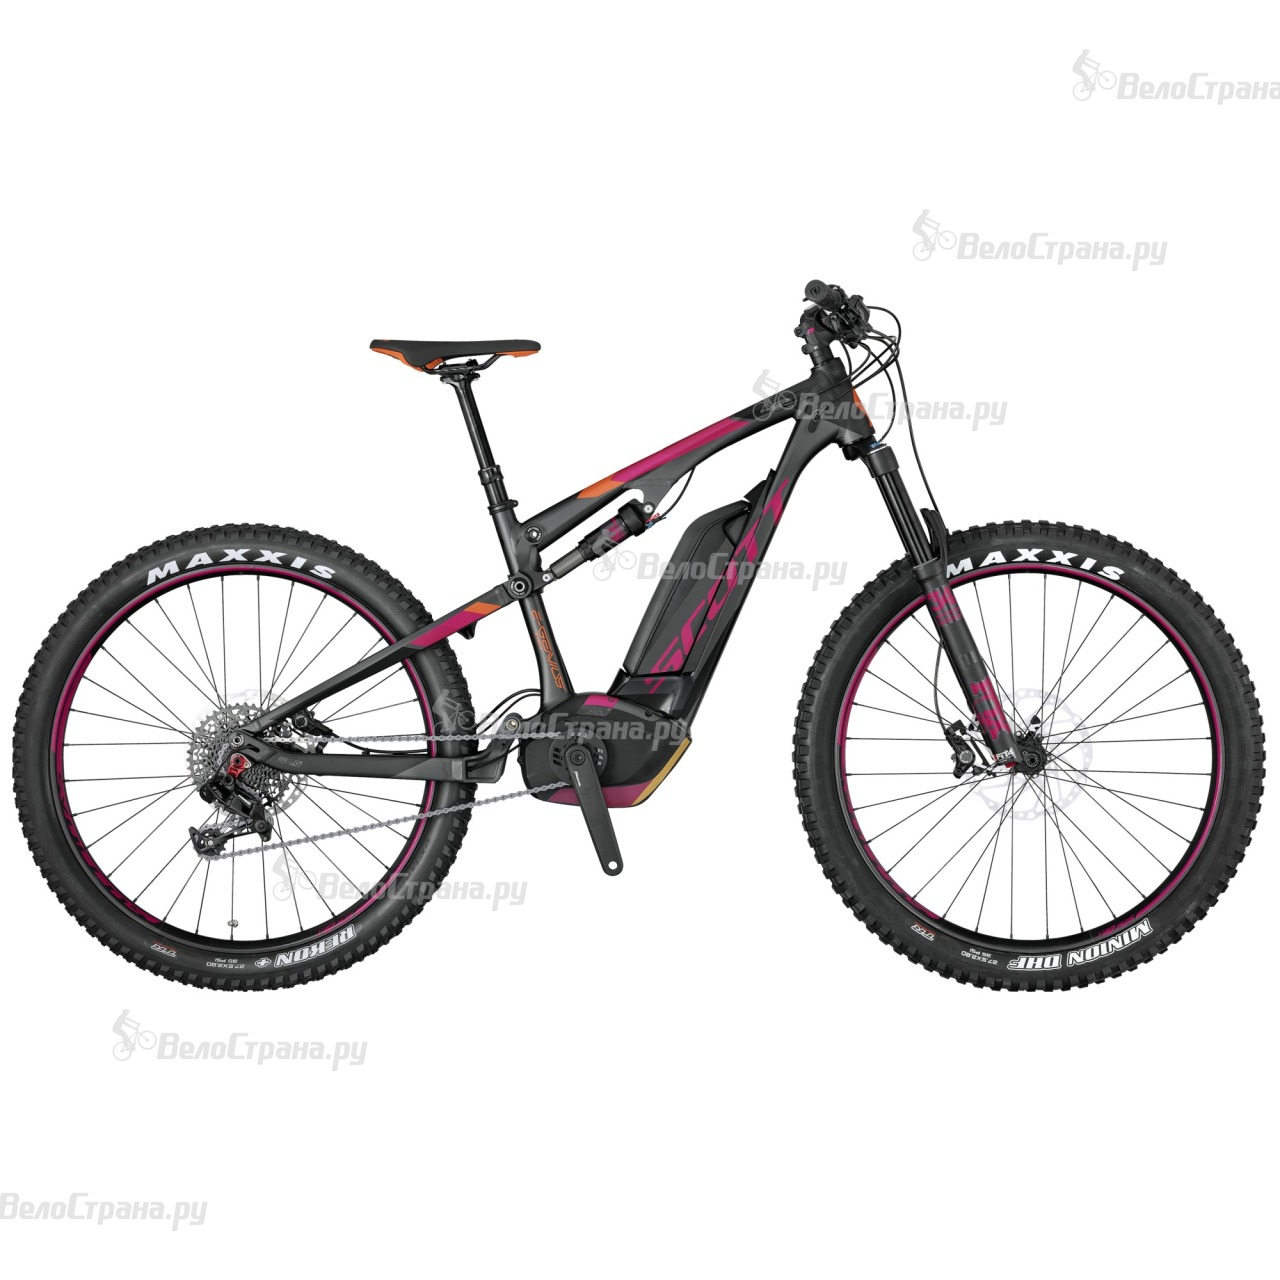 Велосипед Scott E-Contessa Genius 720 Plus (2017) велосипед scott contessa genius 710 2015